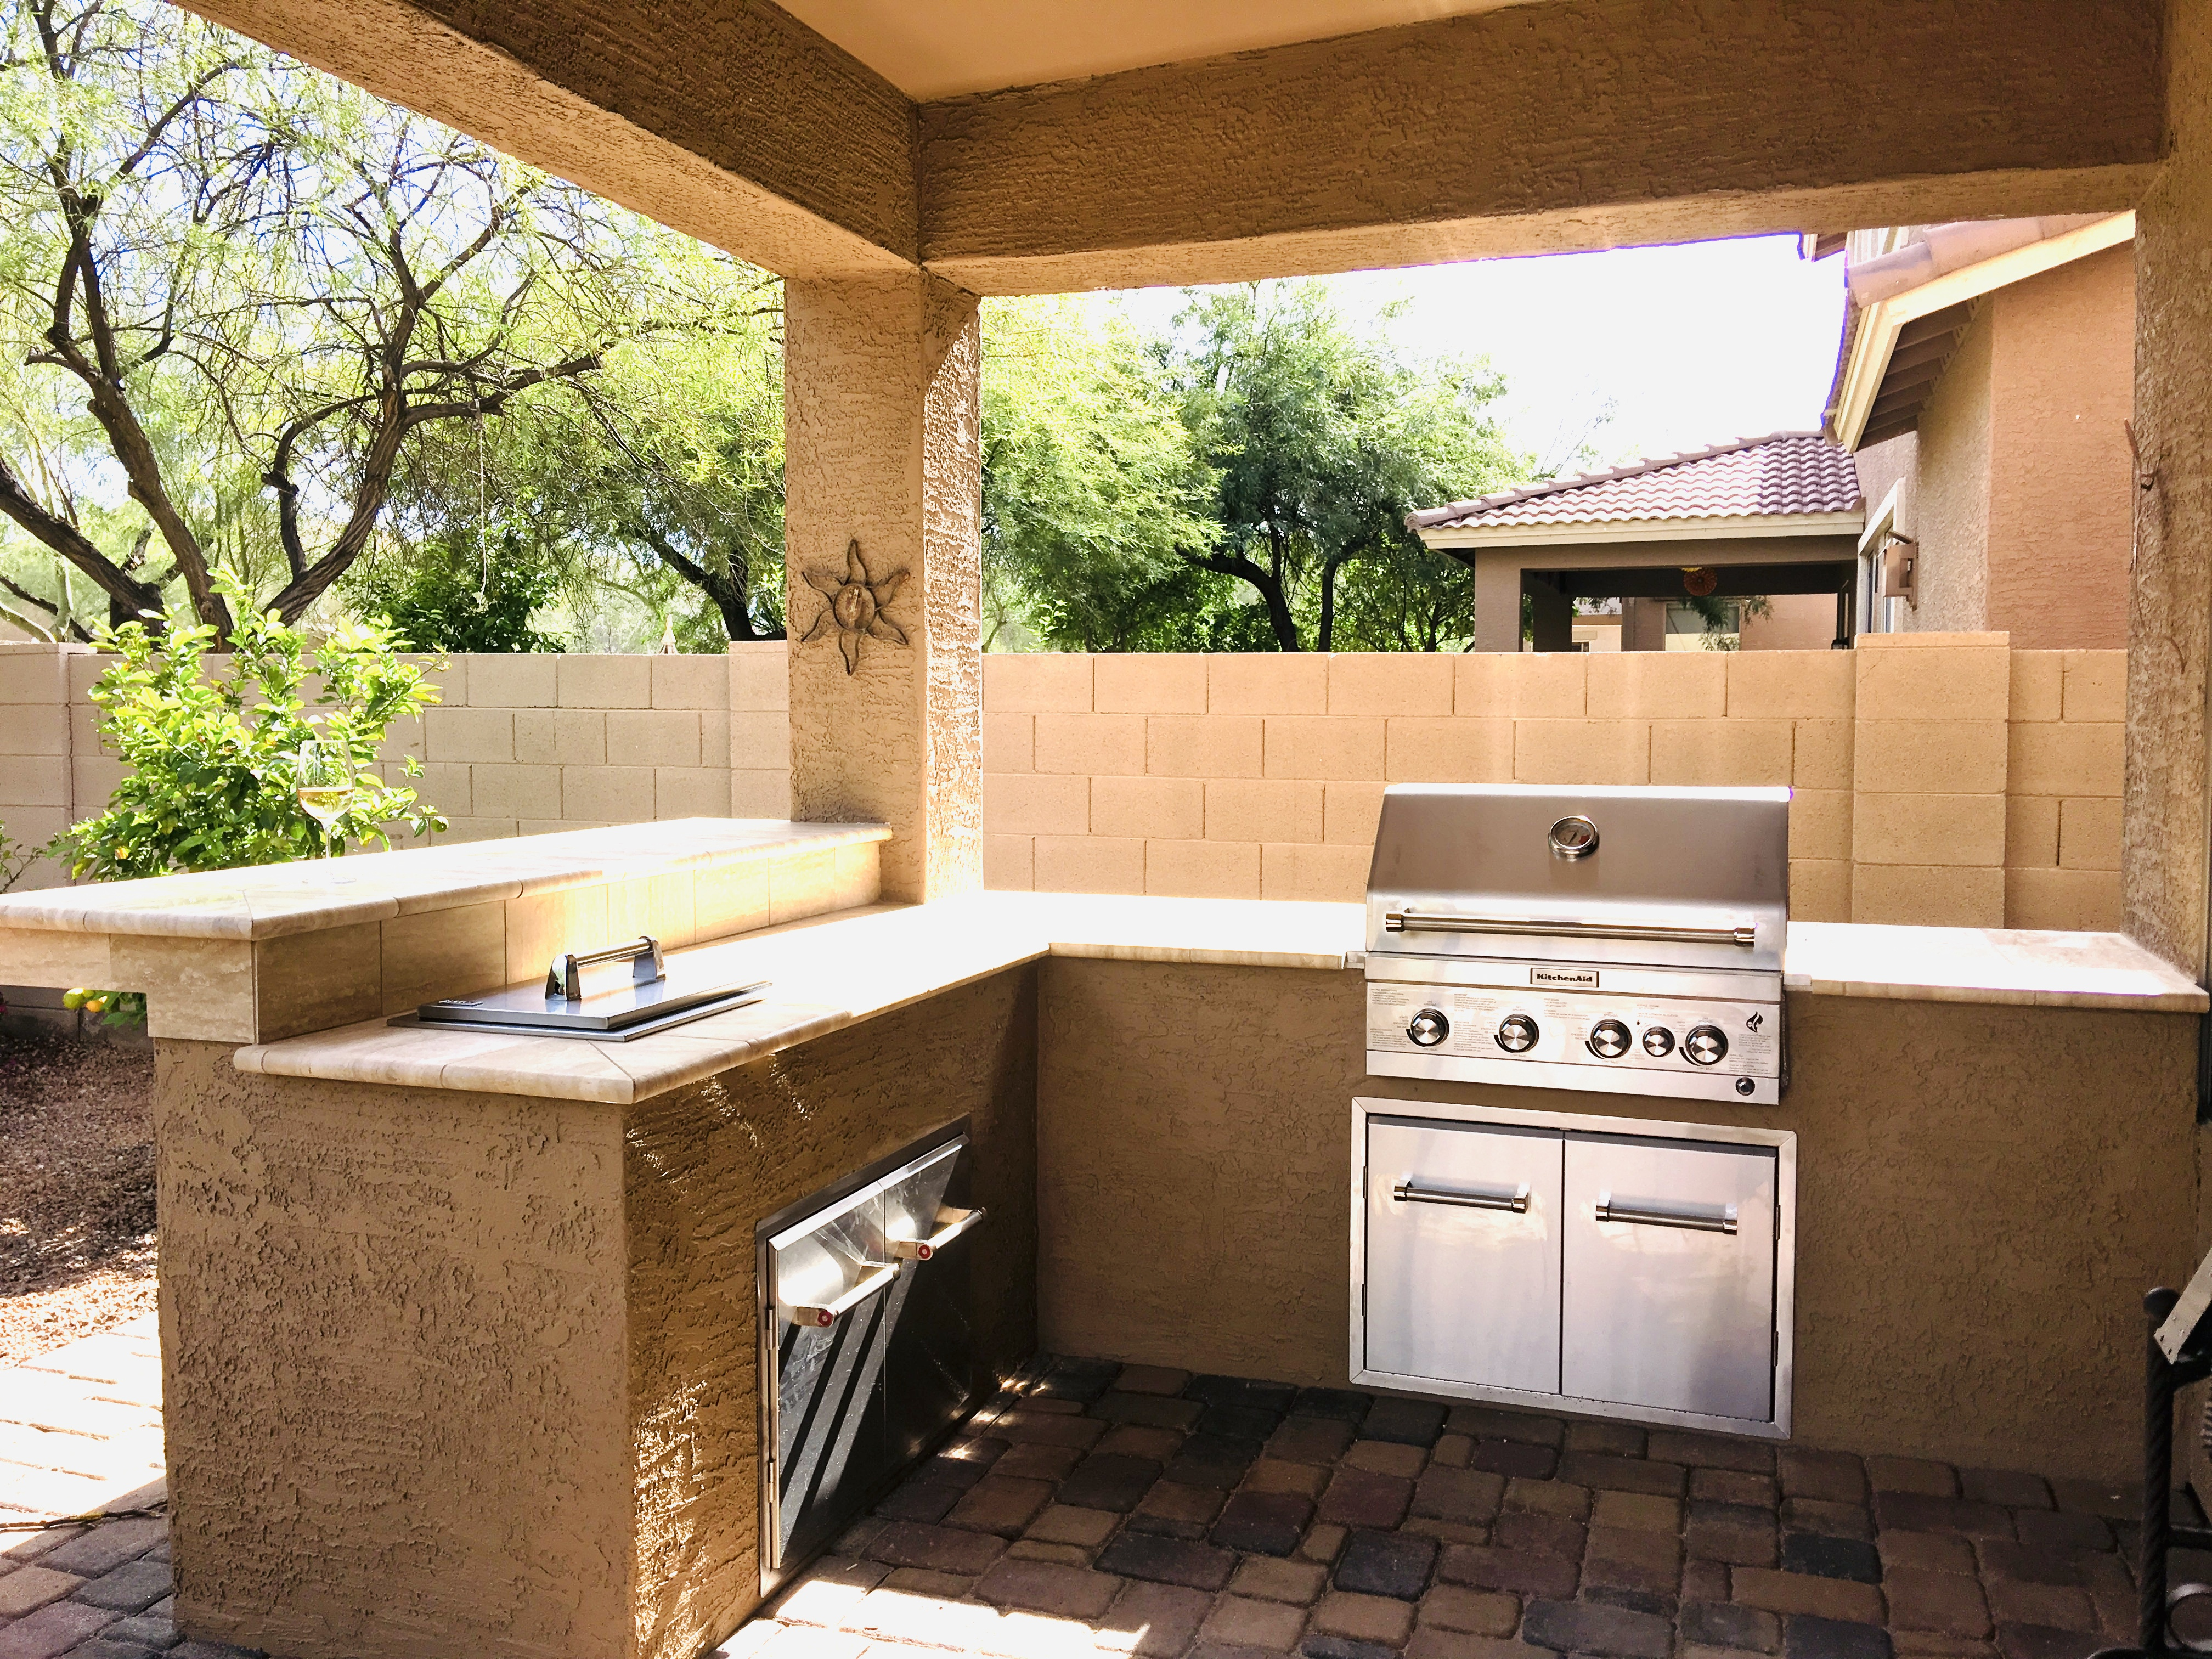 Outdoor BBQ Kitchen with Bar Queen Creek